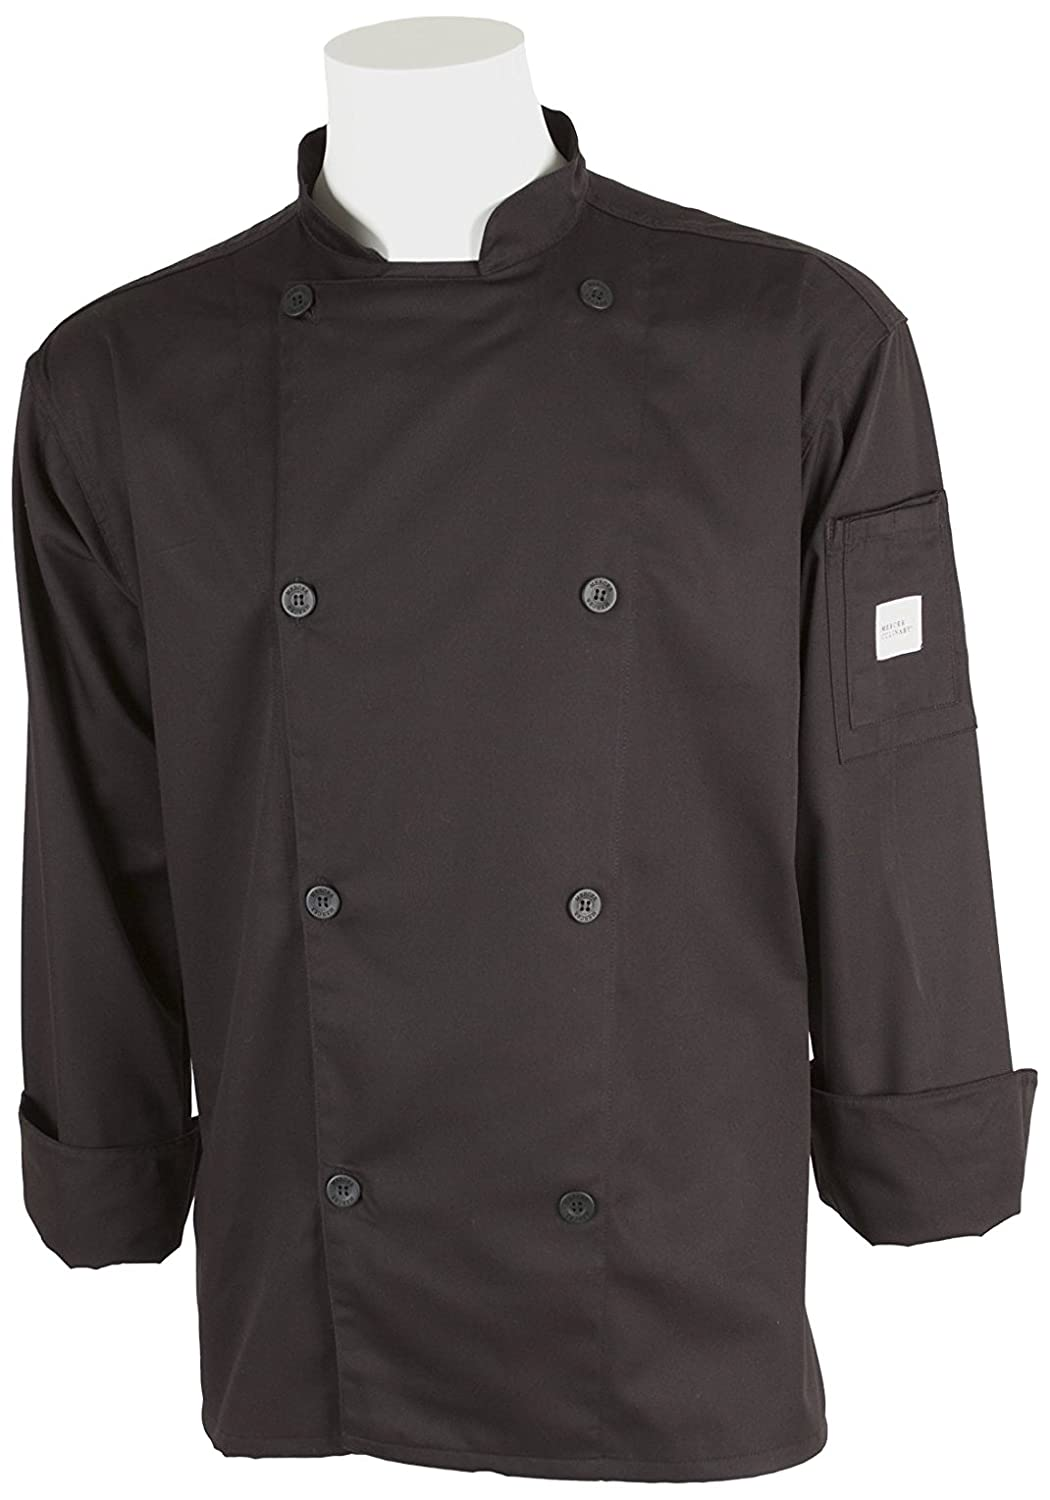 Mercer Culinary M61010BKM Genesis Mens Chef Jacket with Traditional Buttons Black Medium